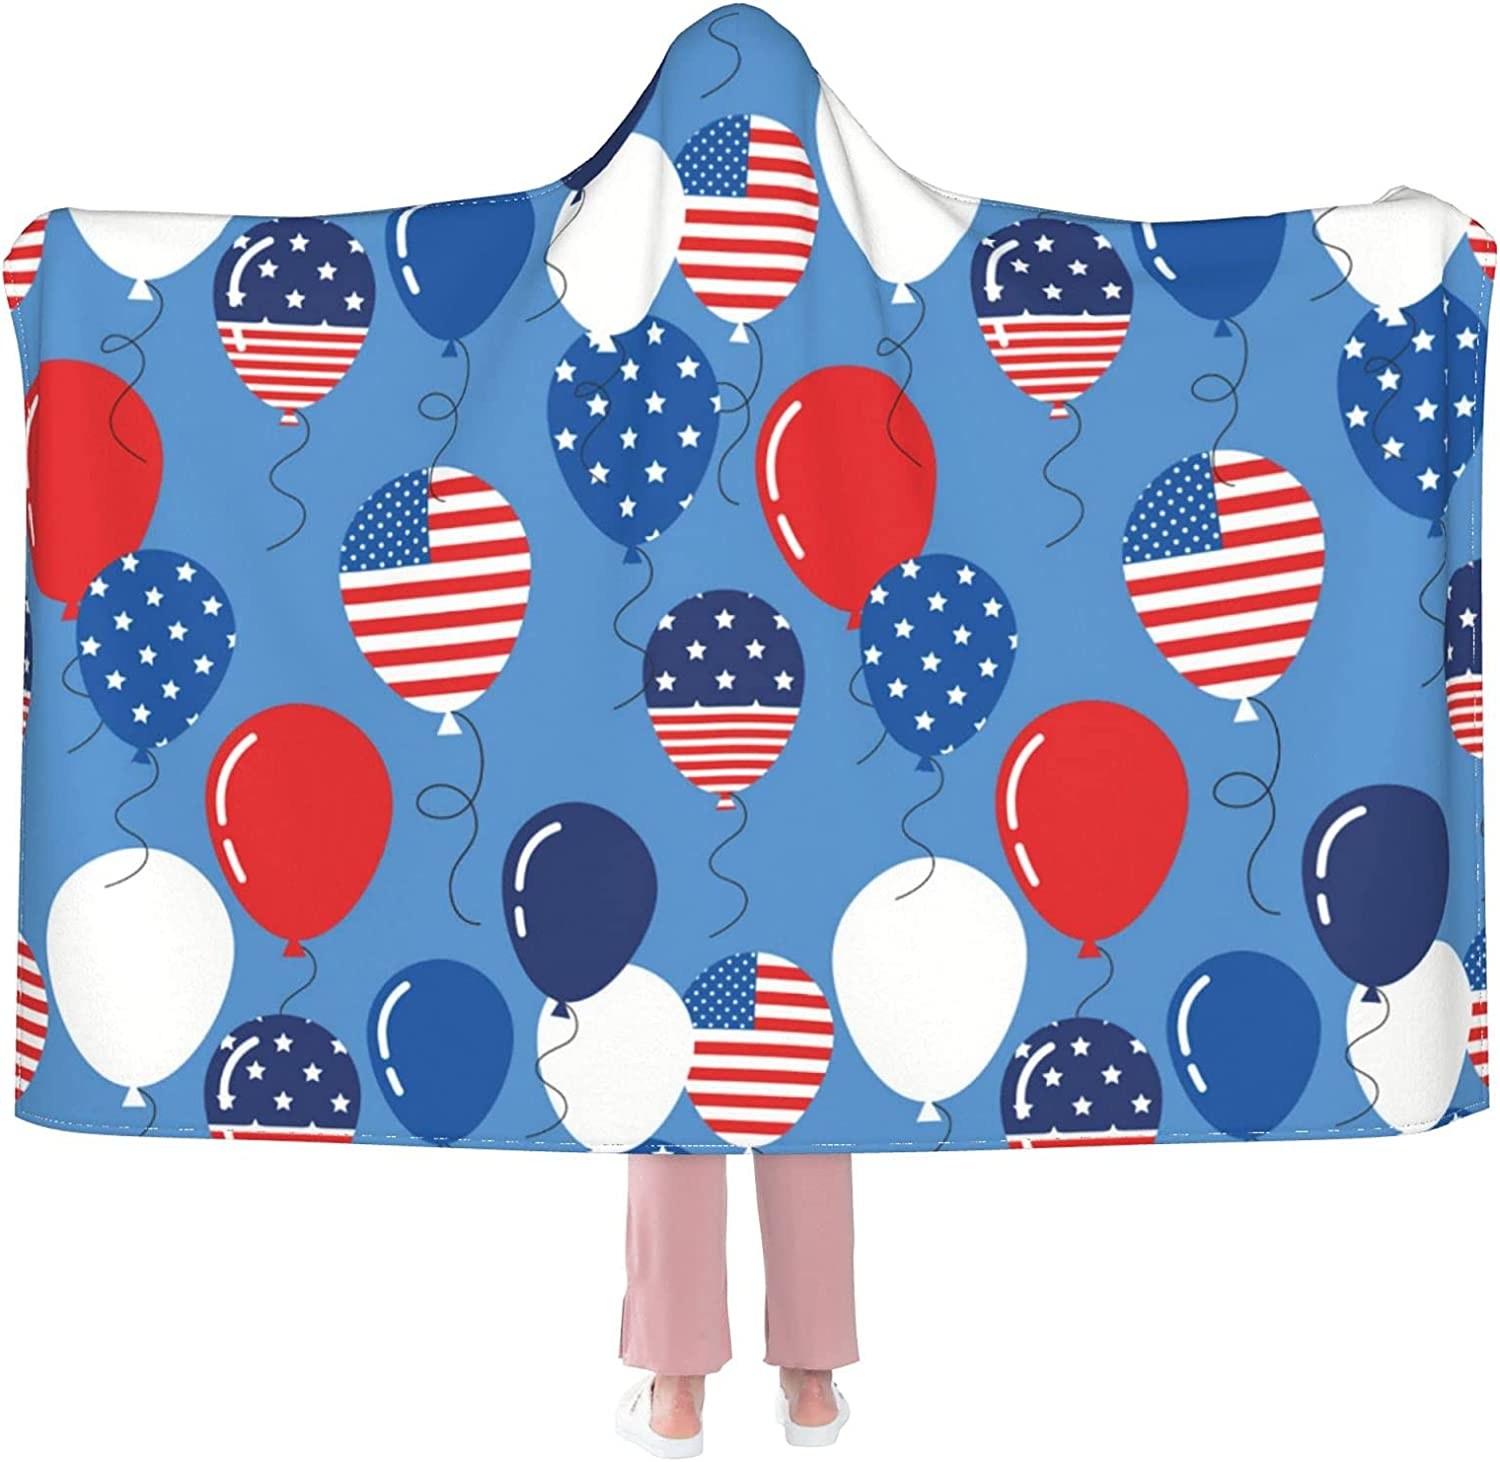 Hooded BlanketAmerican Flag Ballons Blanket Throw Same day shipping Fuzzy All items free shipping